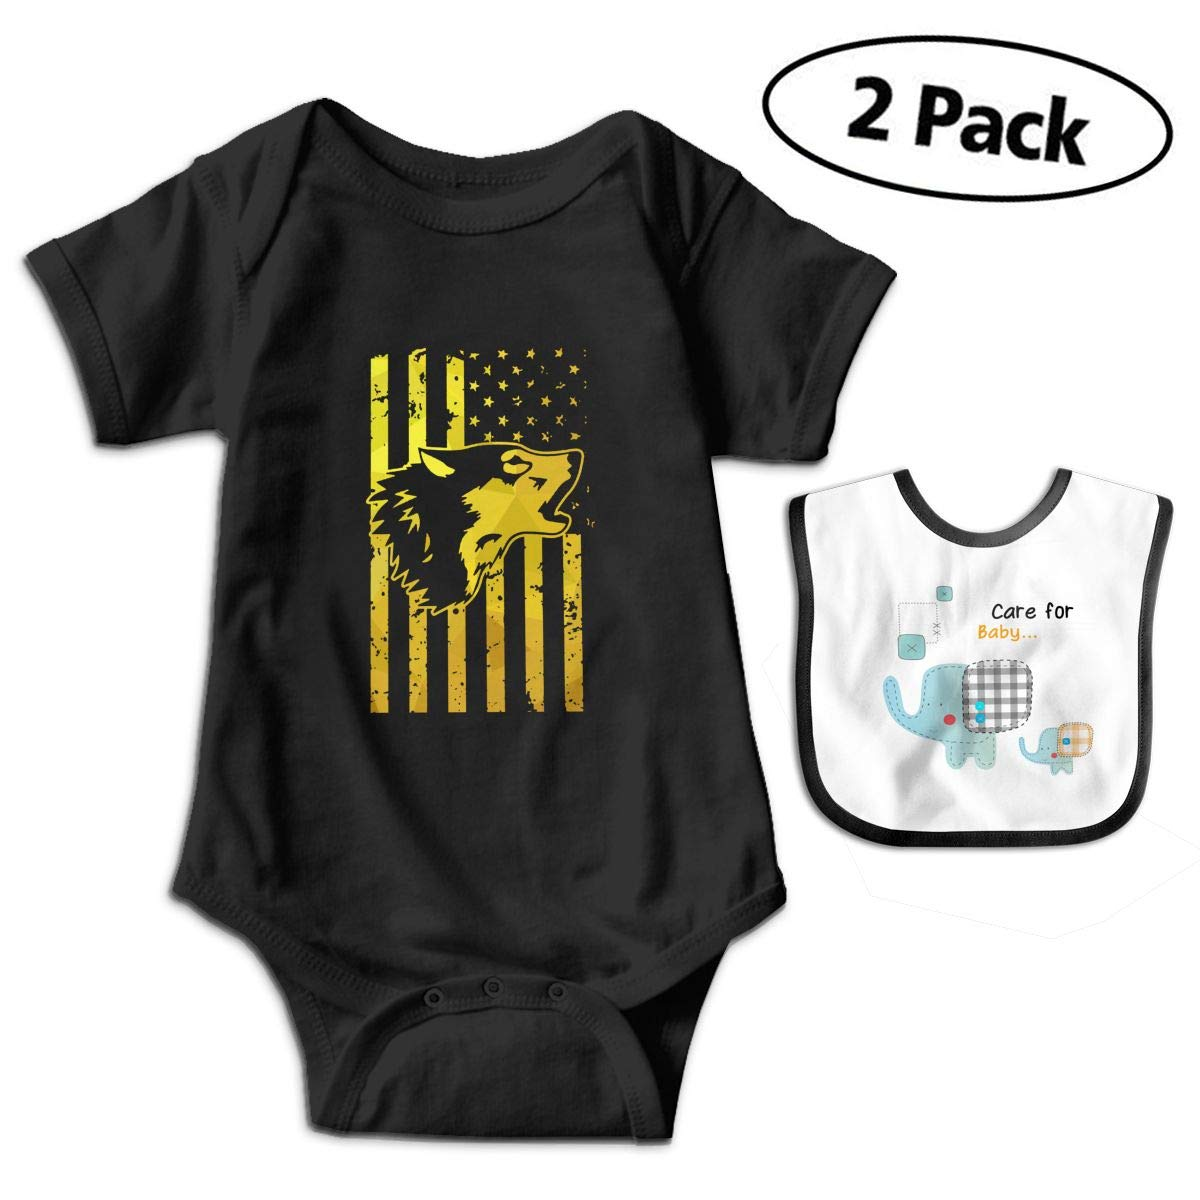 Wolf American Flag Pride Infant Baby Boys Girls Short Sleeve Romper Bodysuit Outfit Clothes